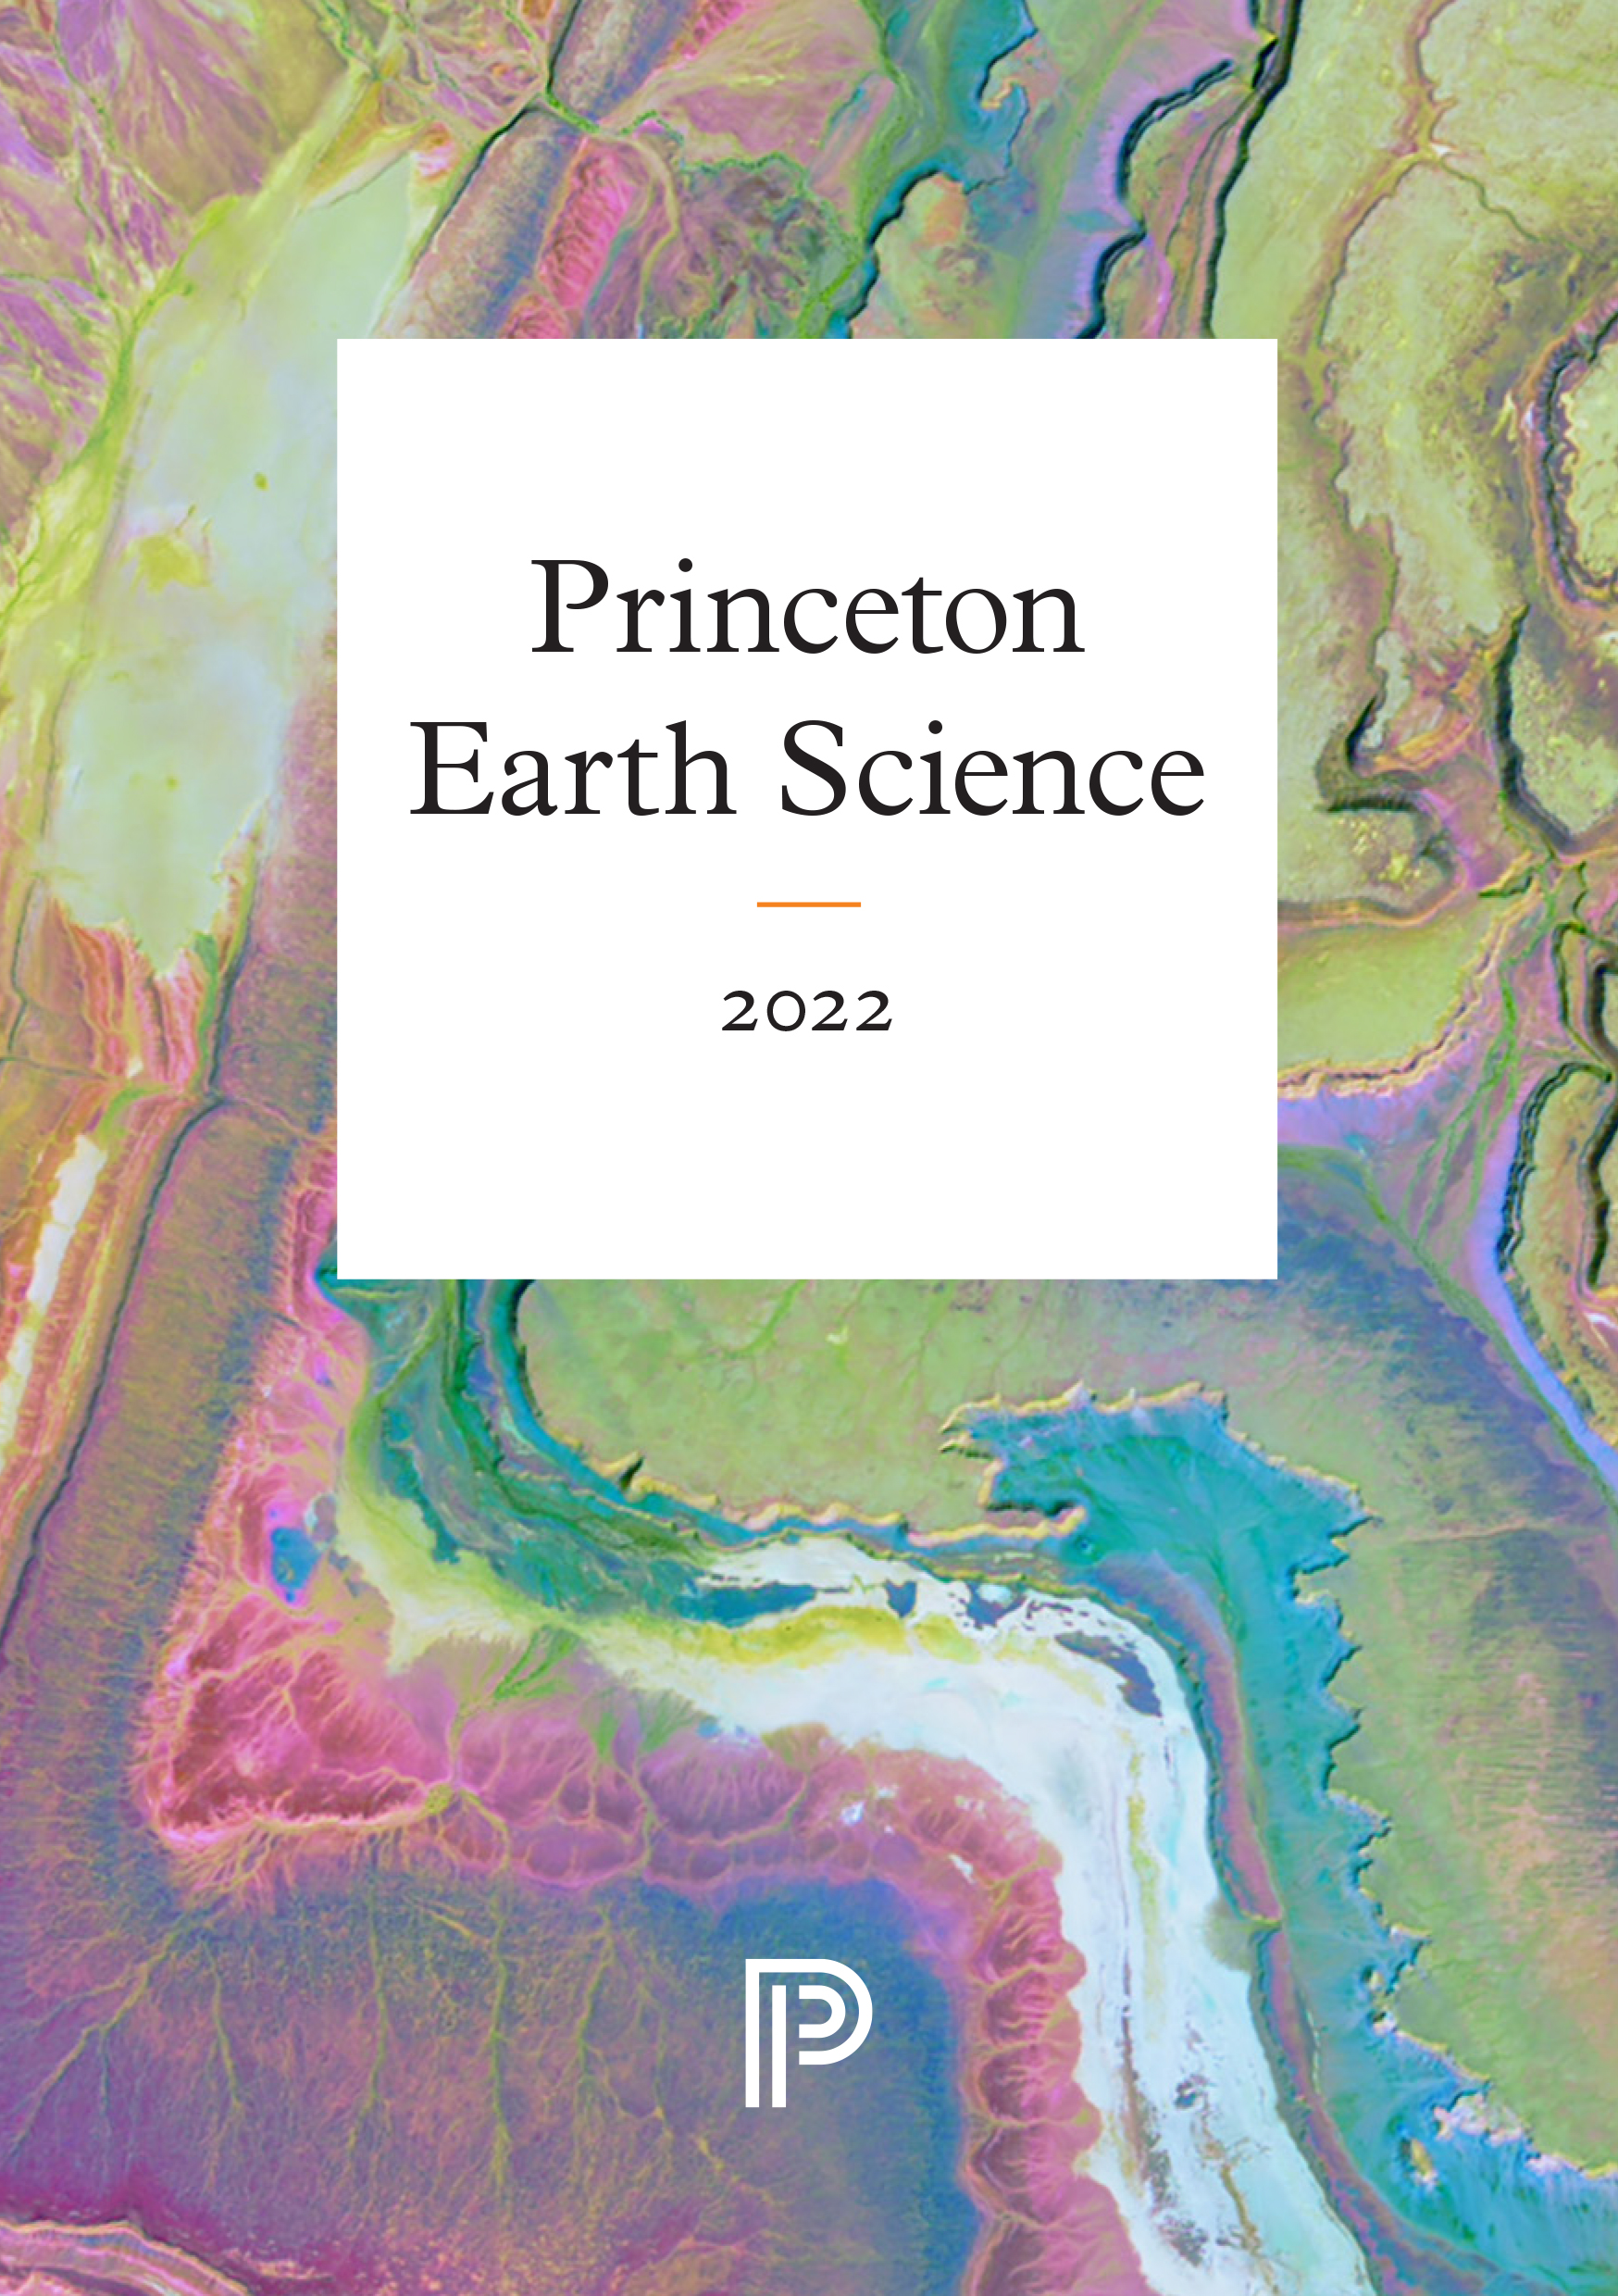 Colorful cover of Earth Sciences 2022 subject catalog. Shades of pink, purple, green, and blue.